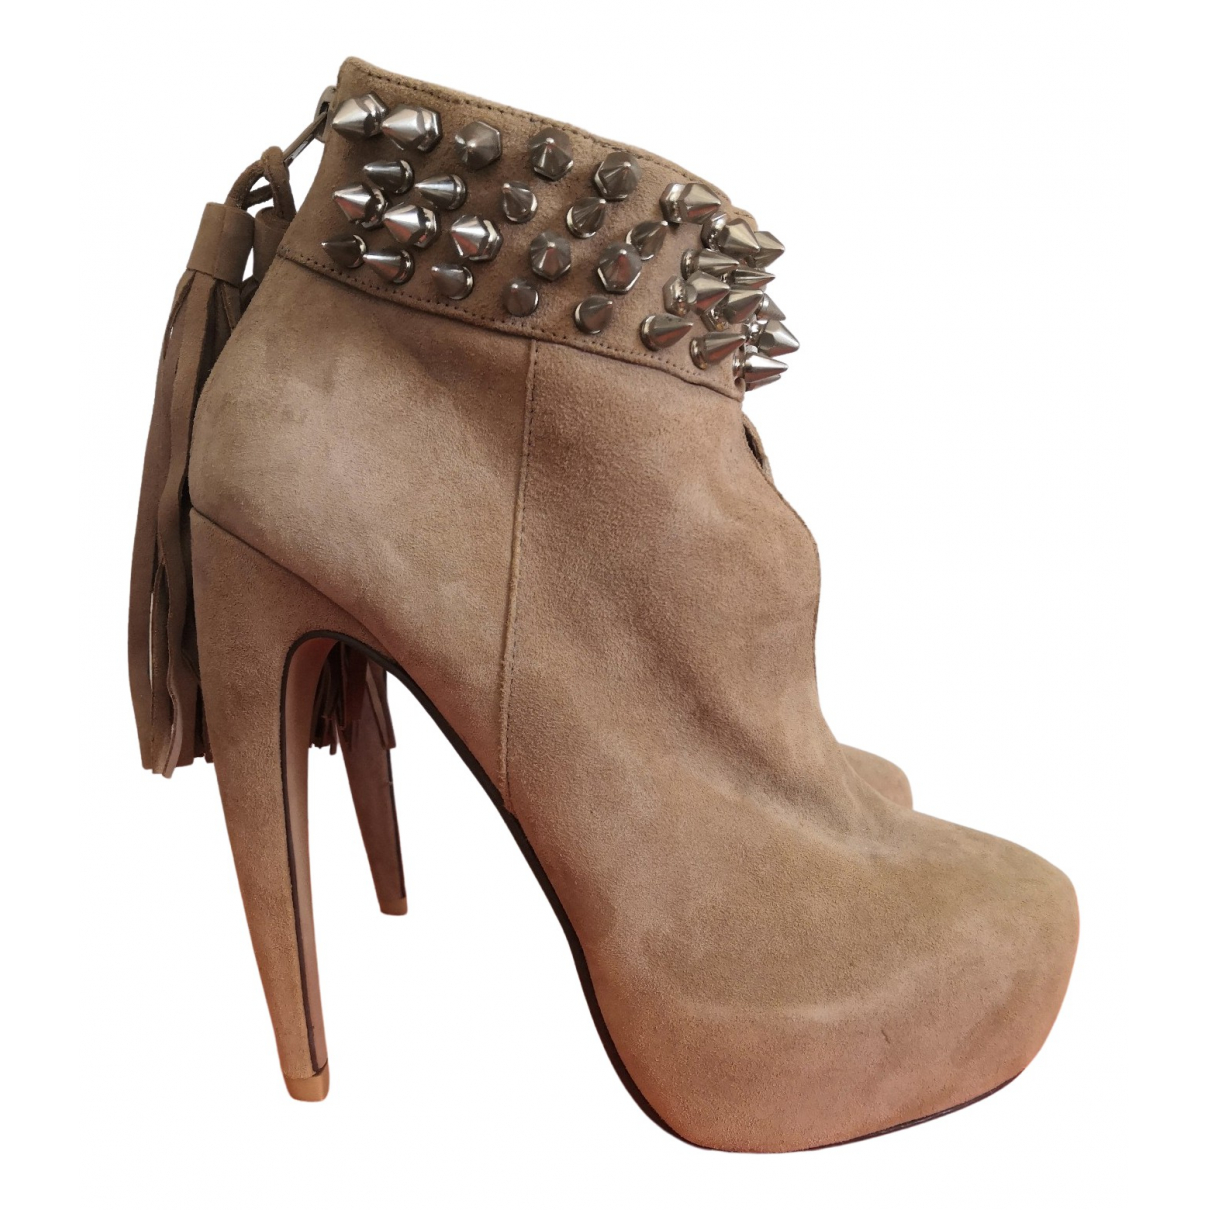 Jeffrey Campbell N Beige Suede Heels for Women 39 EU